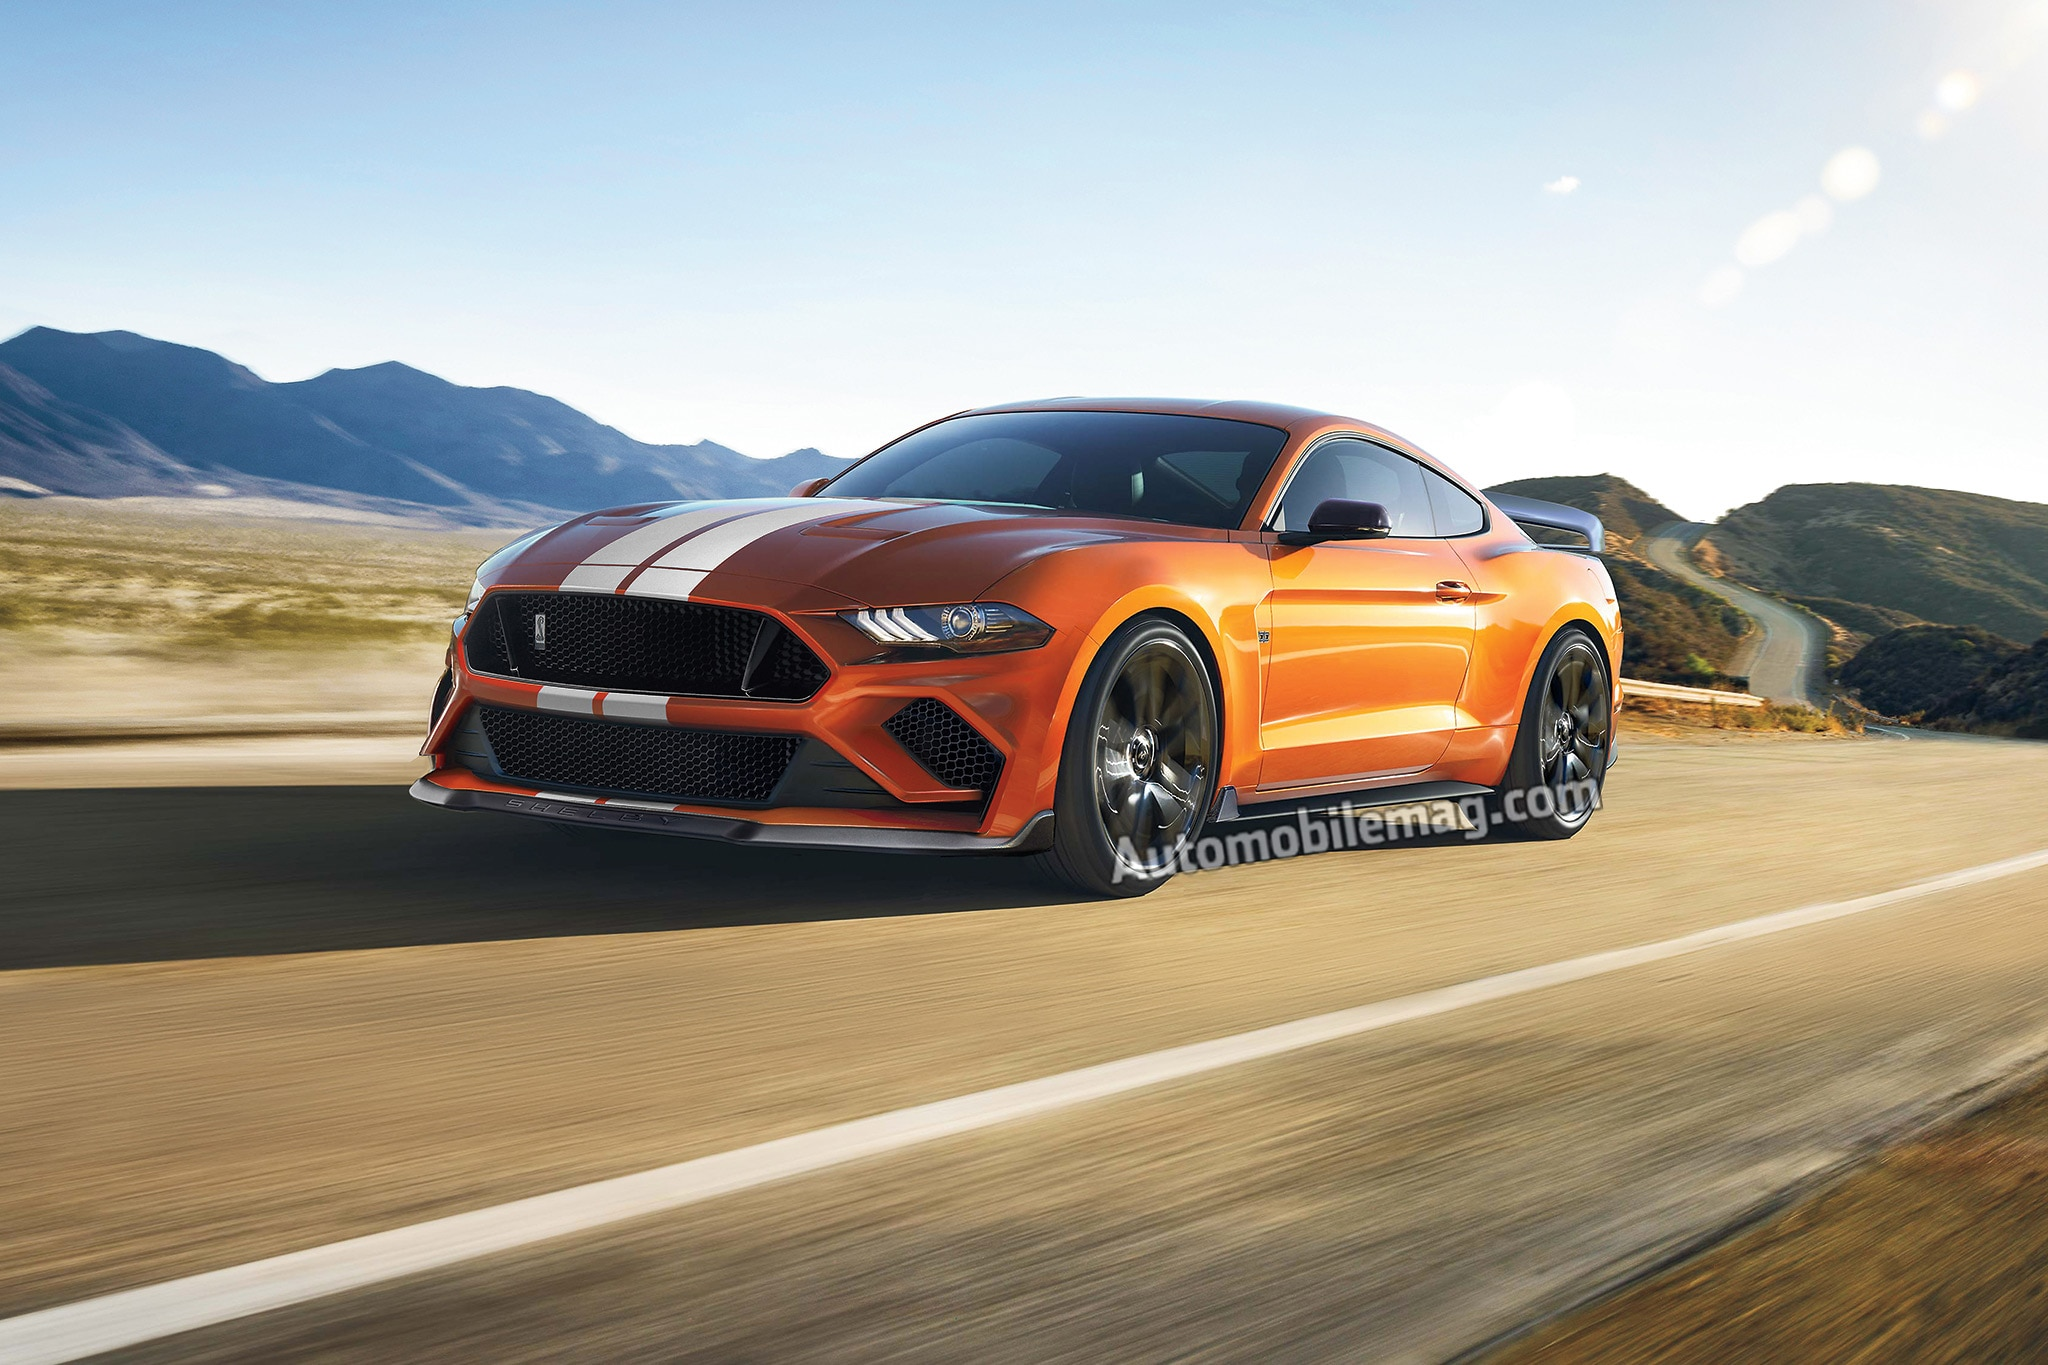 2019 Ford Mustang Shelby Gt500 Confirmed With 700 Horsepower